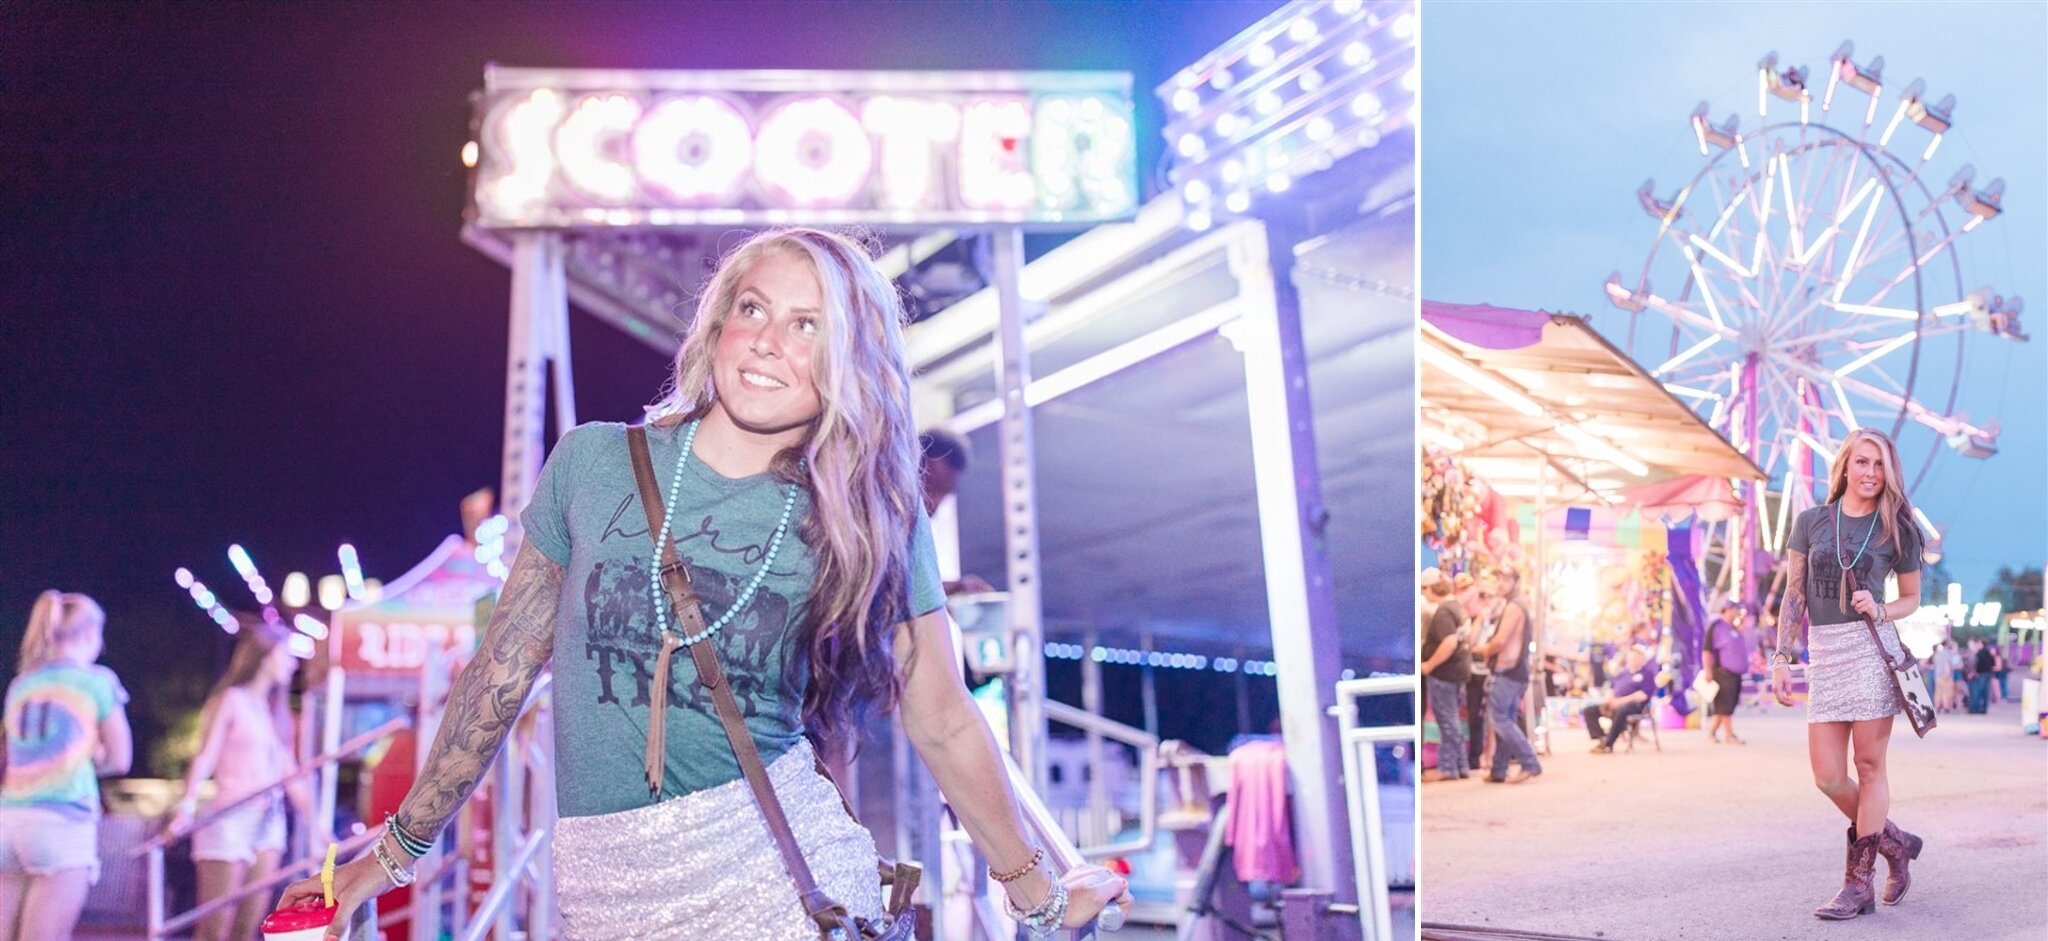 Fun photoshoot the the Outagamie County Fair in Seymour, WI. The carnival ride lights were a perfect backdrop to our creative content photoshoot.